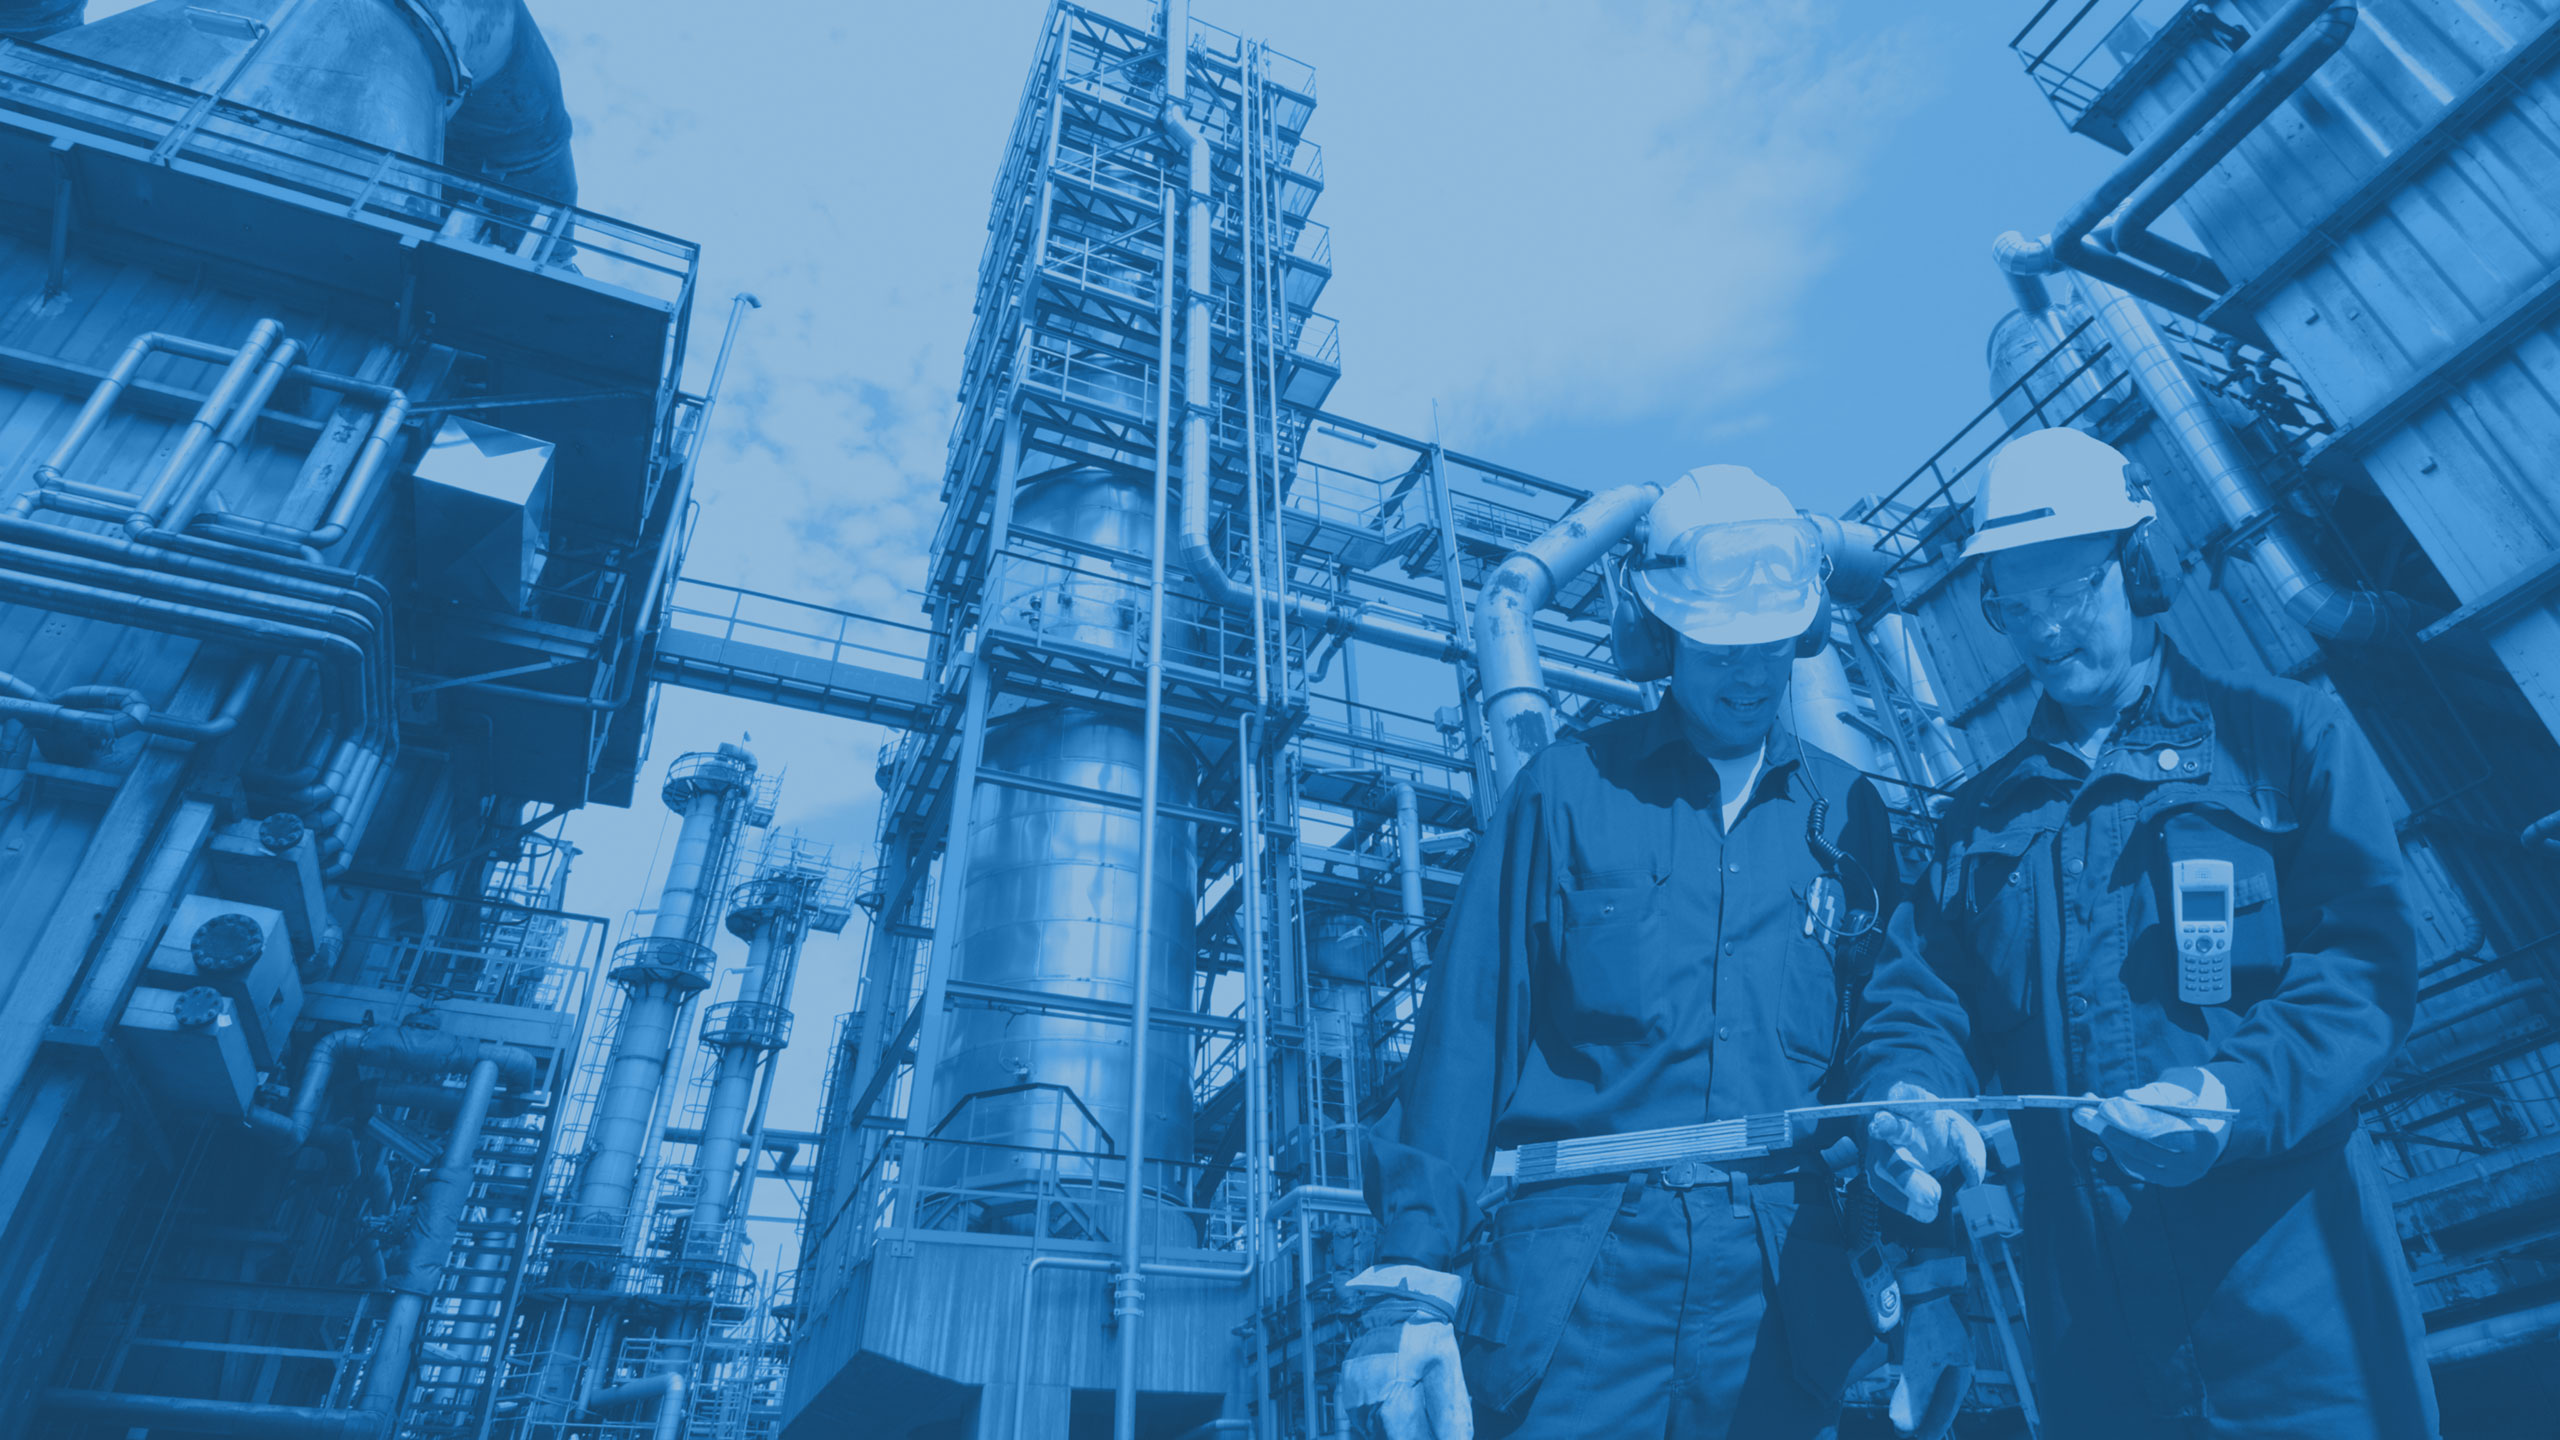 Refinery_Workers_Blue